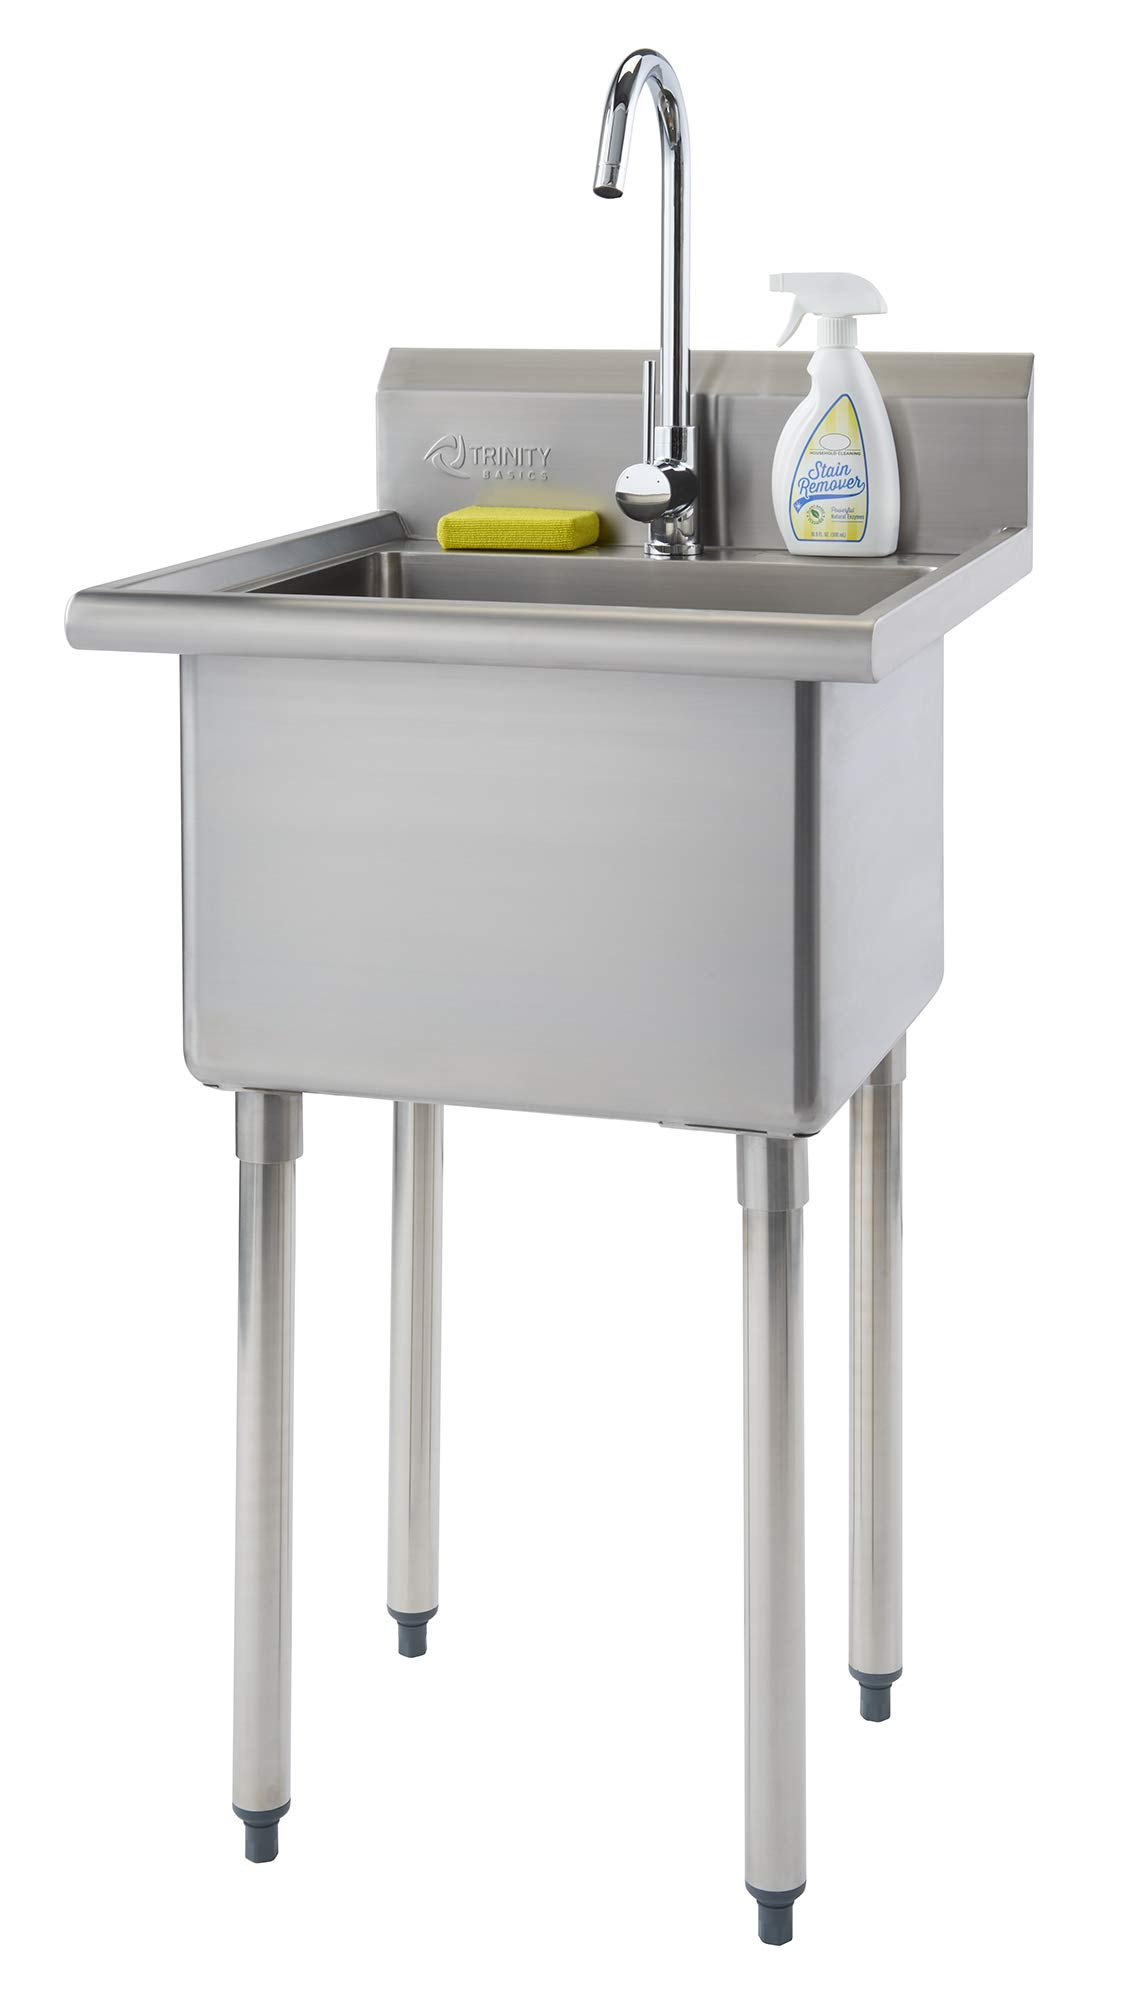 TRINITY THA-0307 Basics Stainless Steel w/Faucet Utility Sink